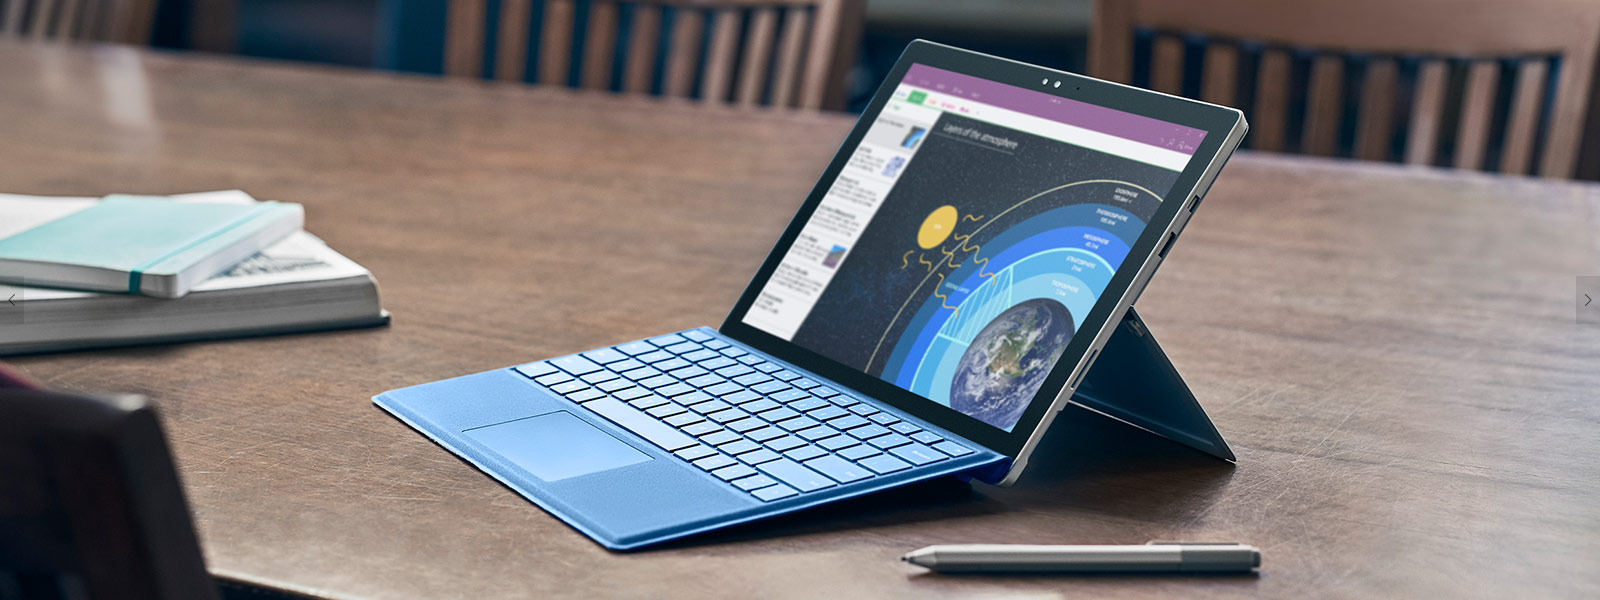 Surface Pro 4 with Surface Pen and mouse.